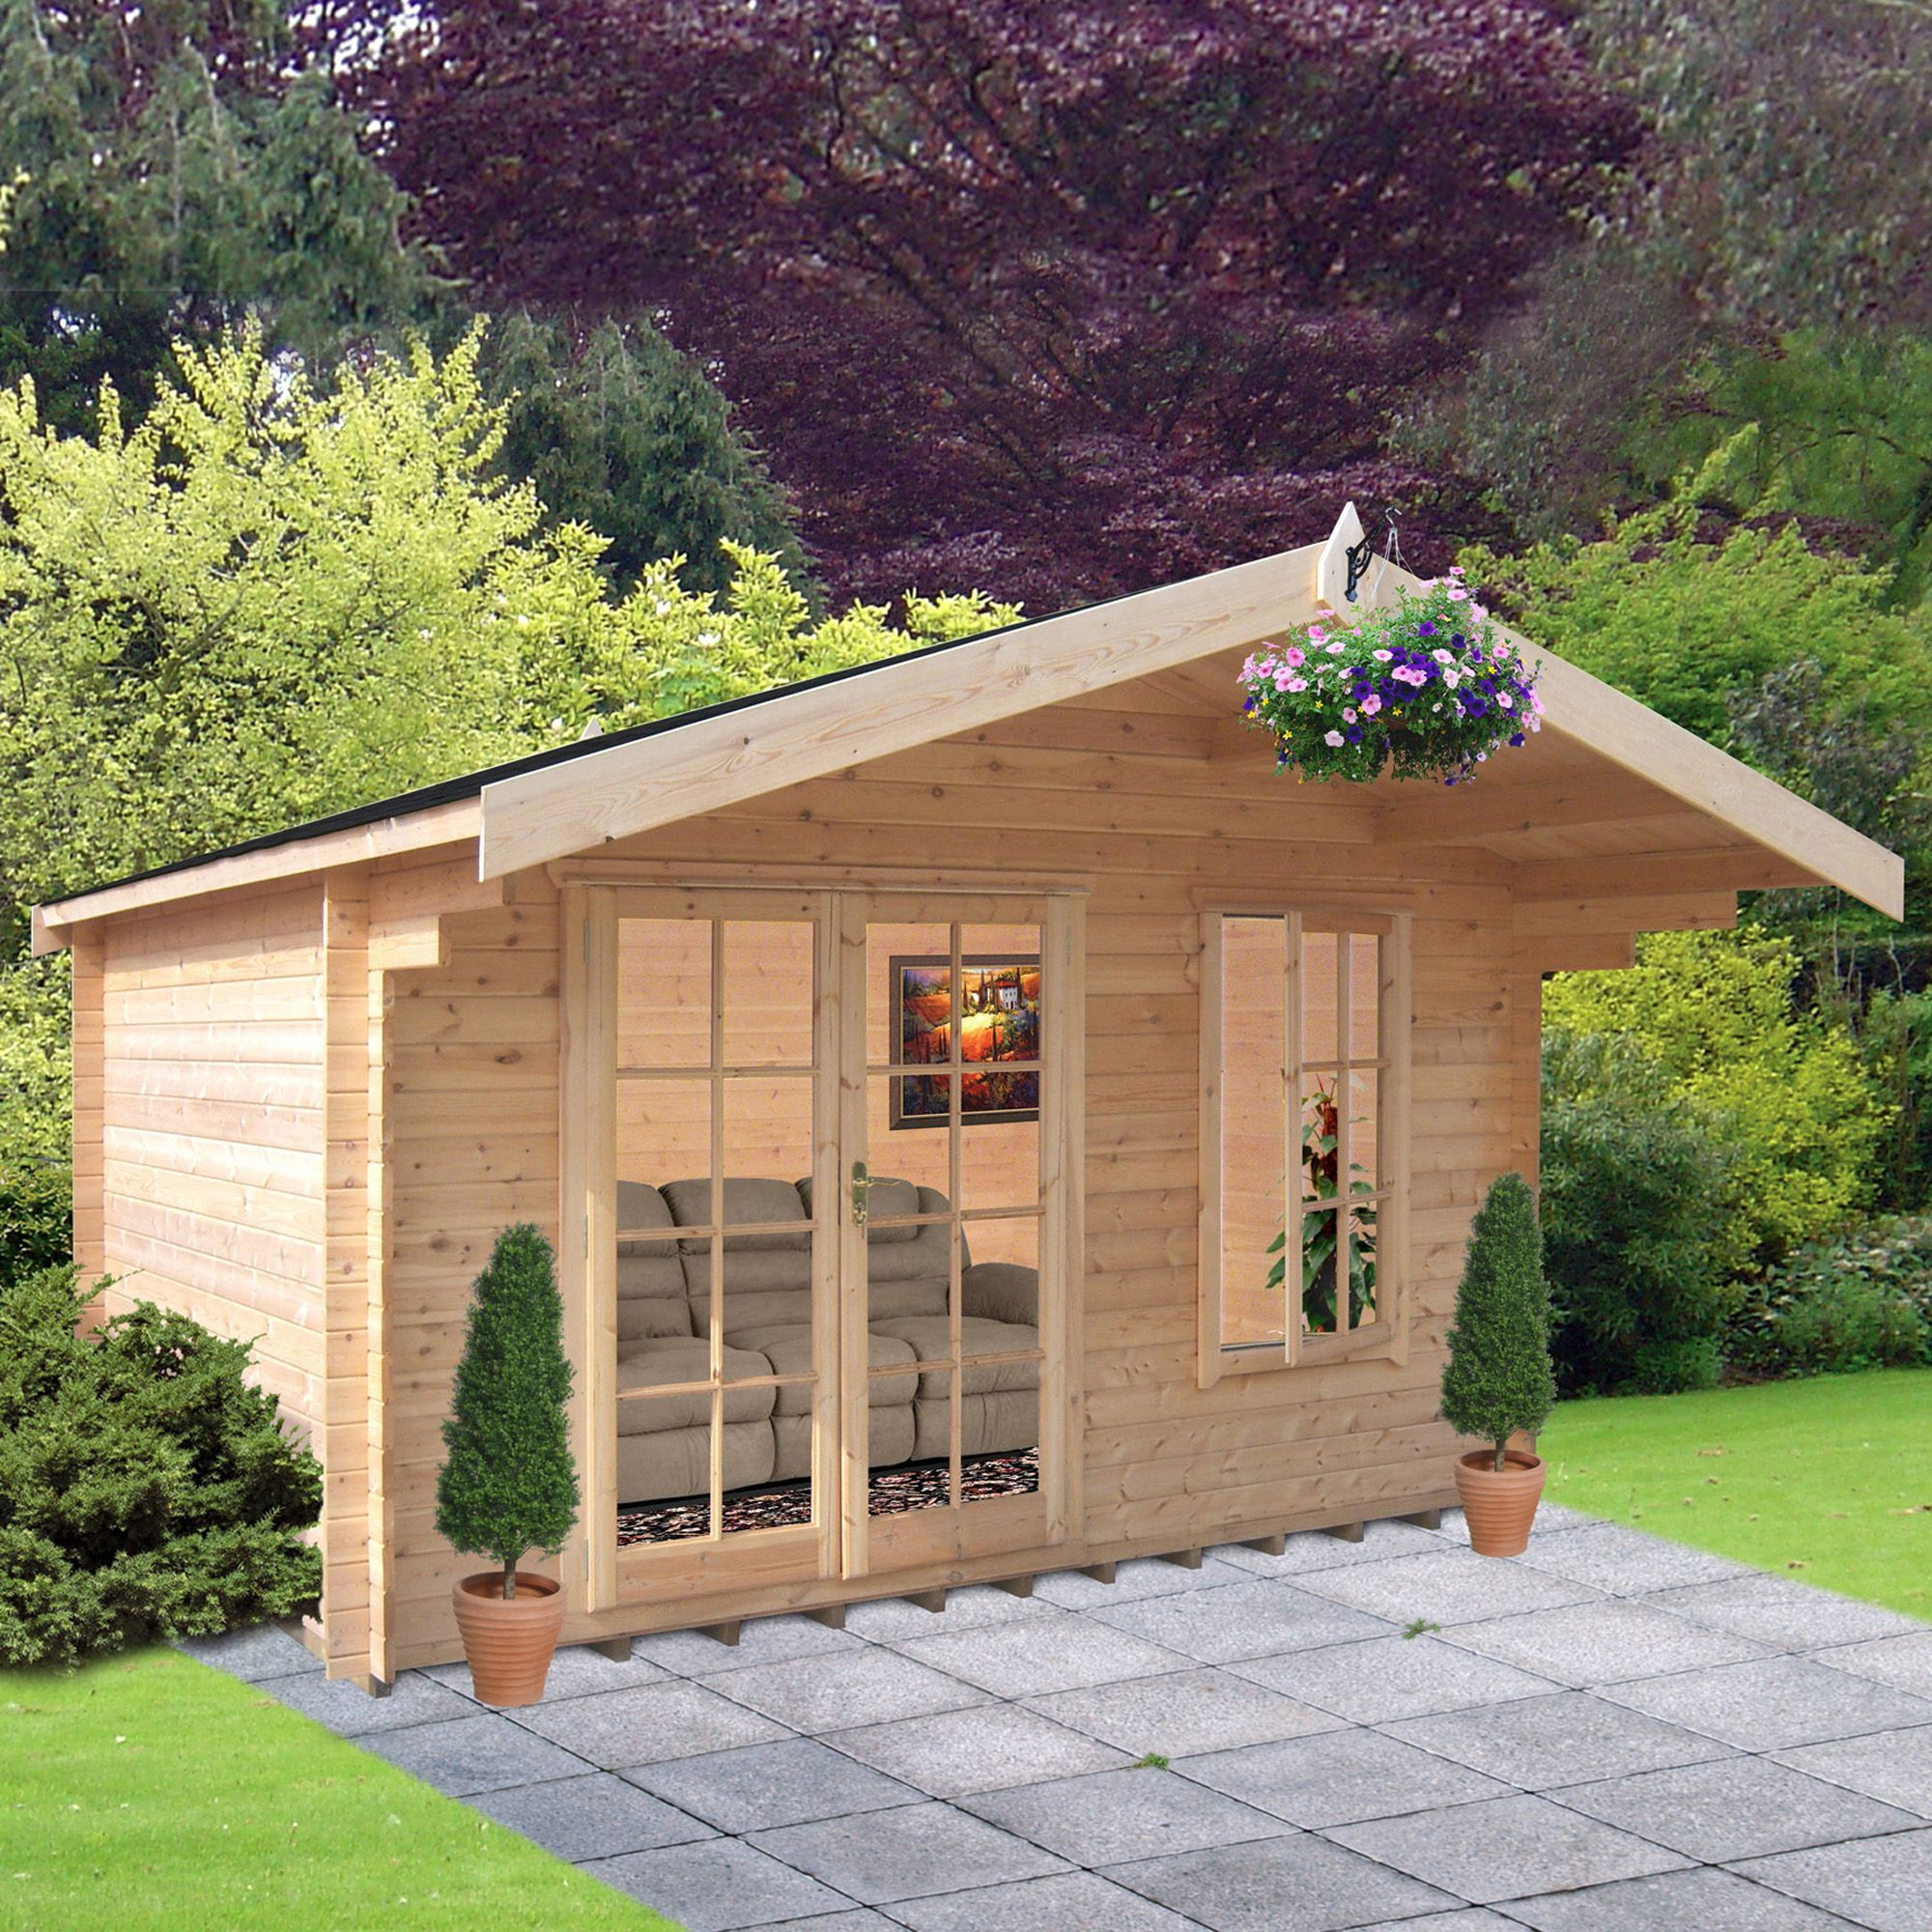 10x10 Cannock 28mm Tongue & Groove Log cabin